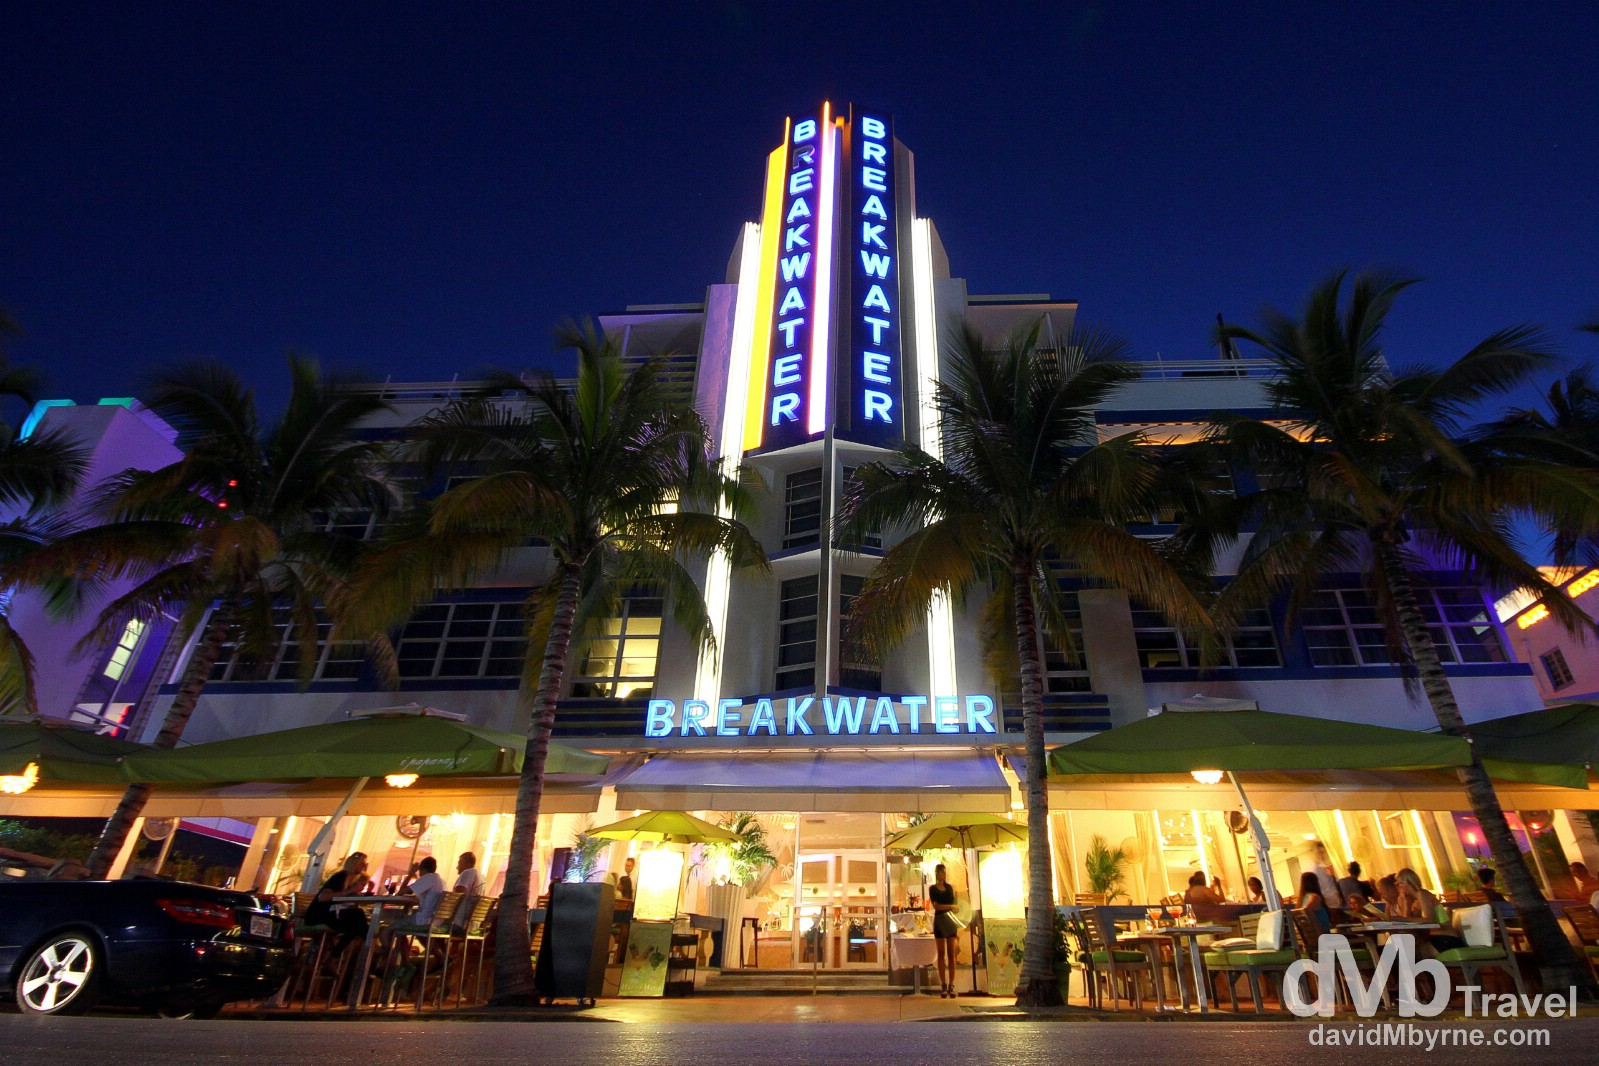 The Breakwater Hotel, Ocean Drive, Miami, Florida, USA. July 8th 2013.